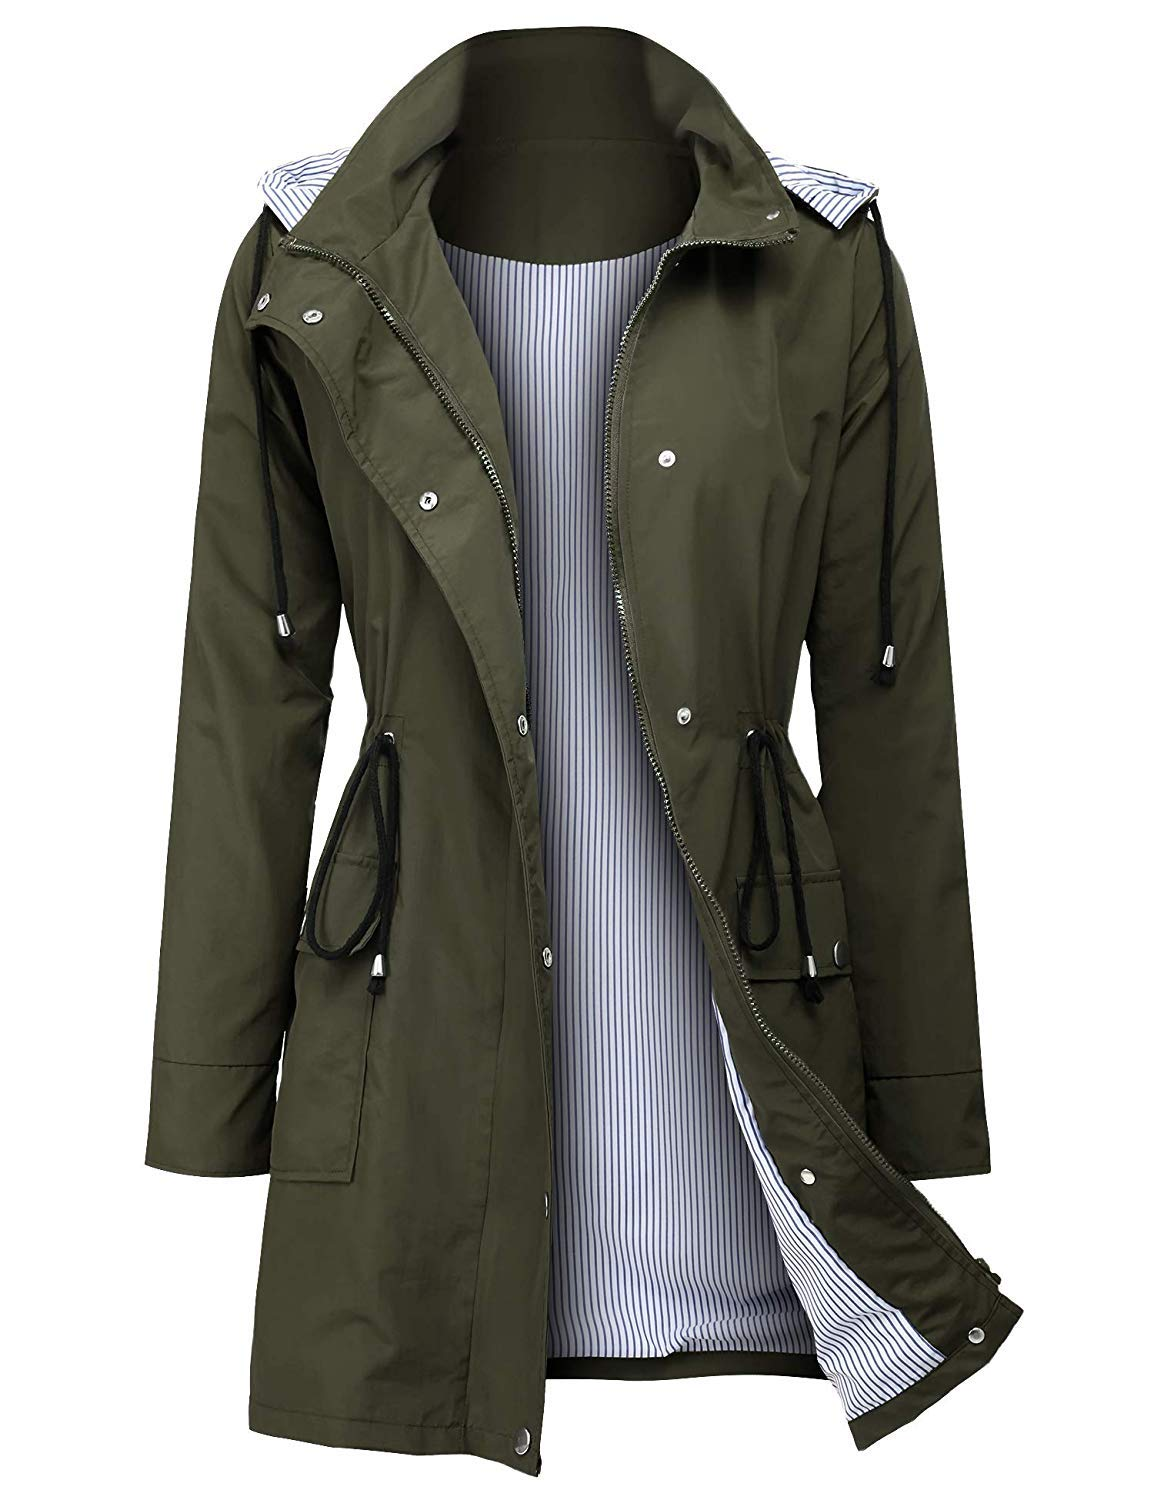 UUANG Waterproof Lightweight Rain Jacket Outdoor Hooded Trench Coat (Green,L) by UUANG